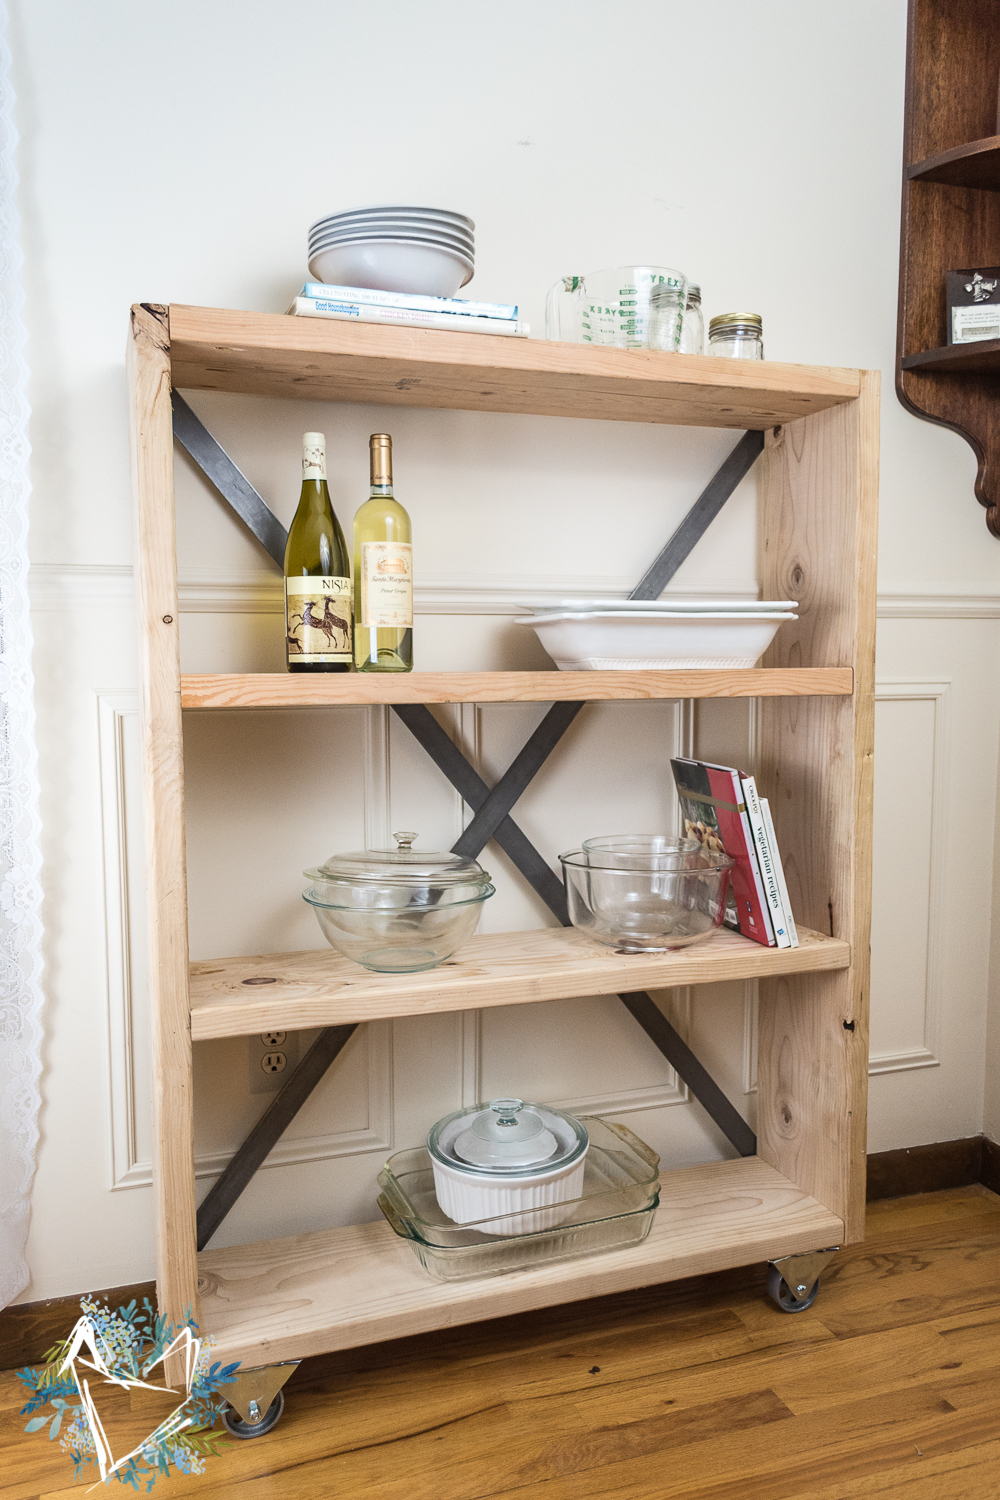 diy-industrial-famhouse-pantry-shelf-8